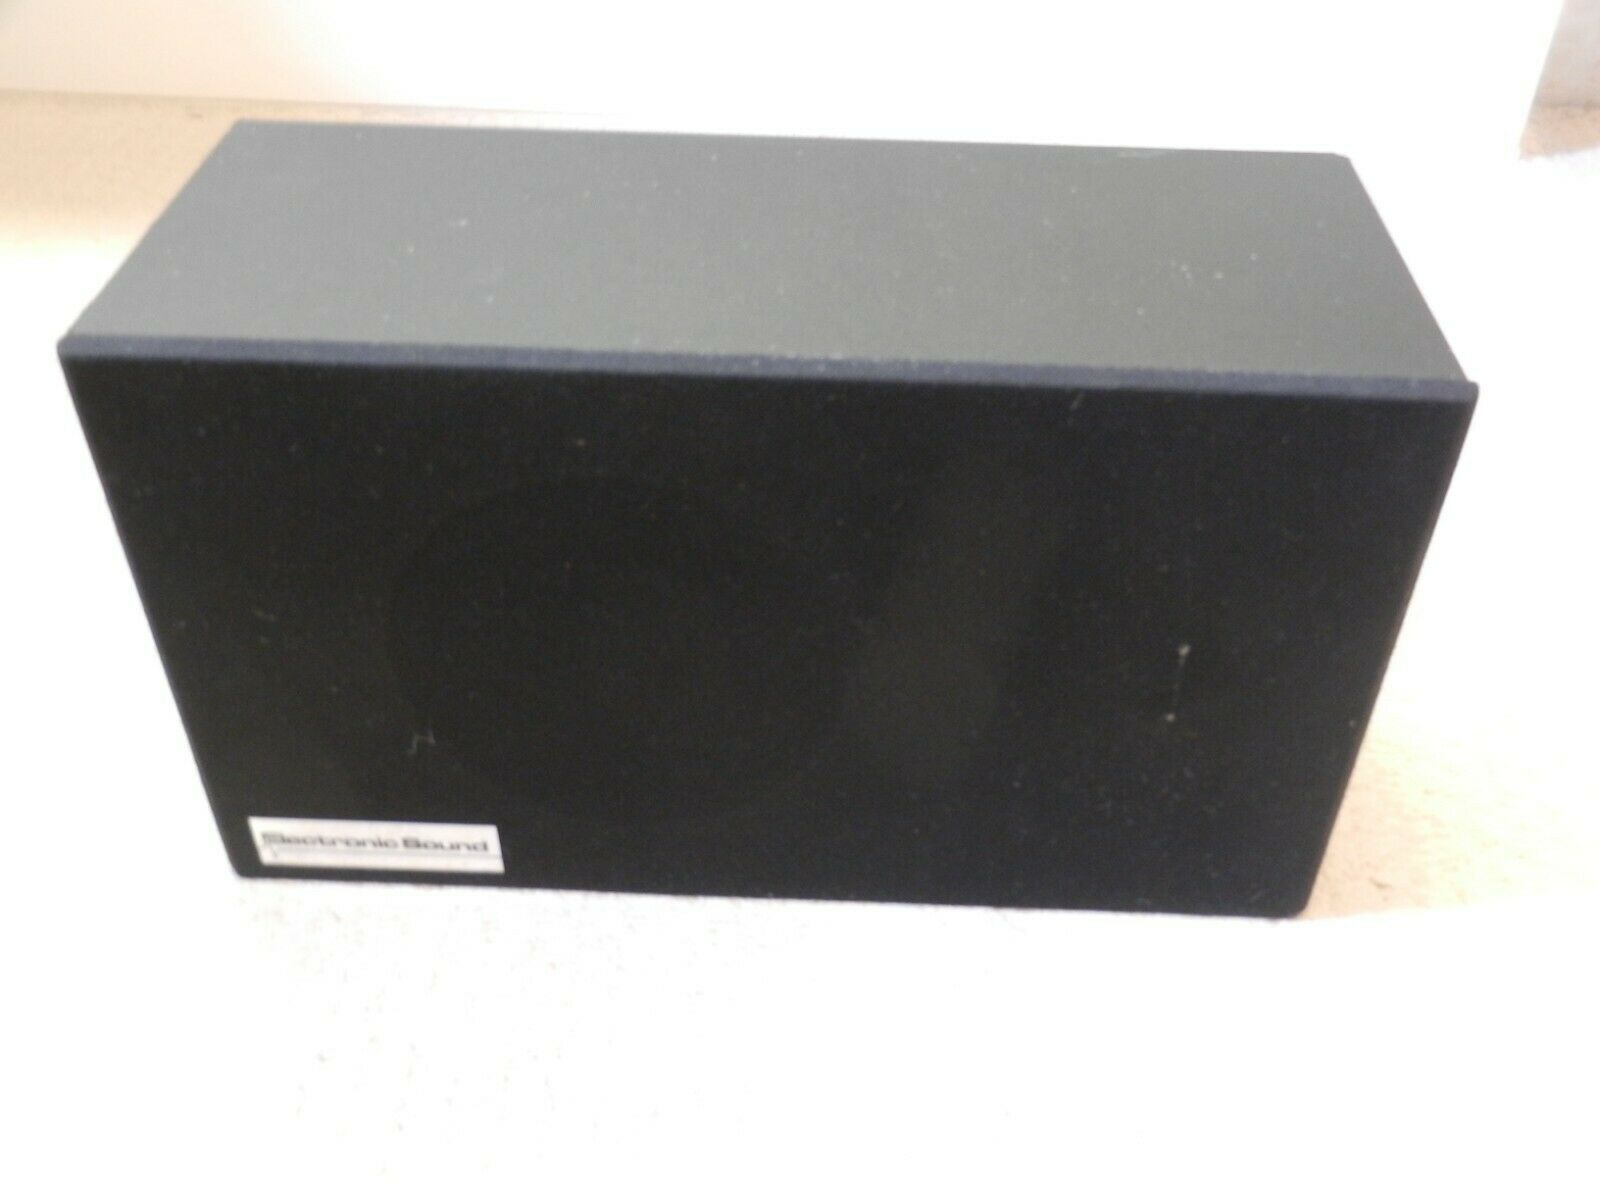 PA Wall Speaker, 6w - 100v by Electronic Sound for speech and music. Tested OK